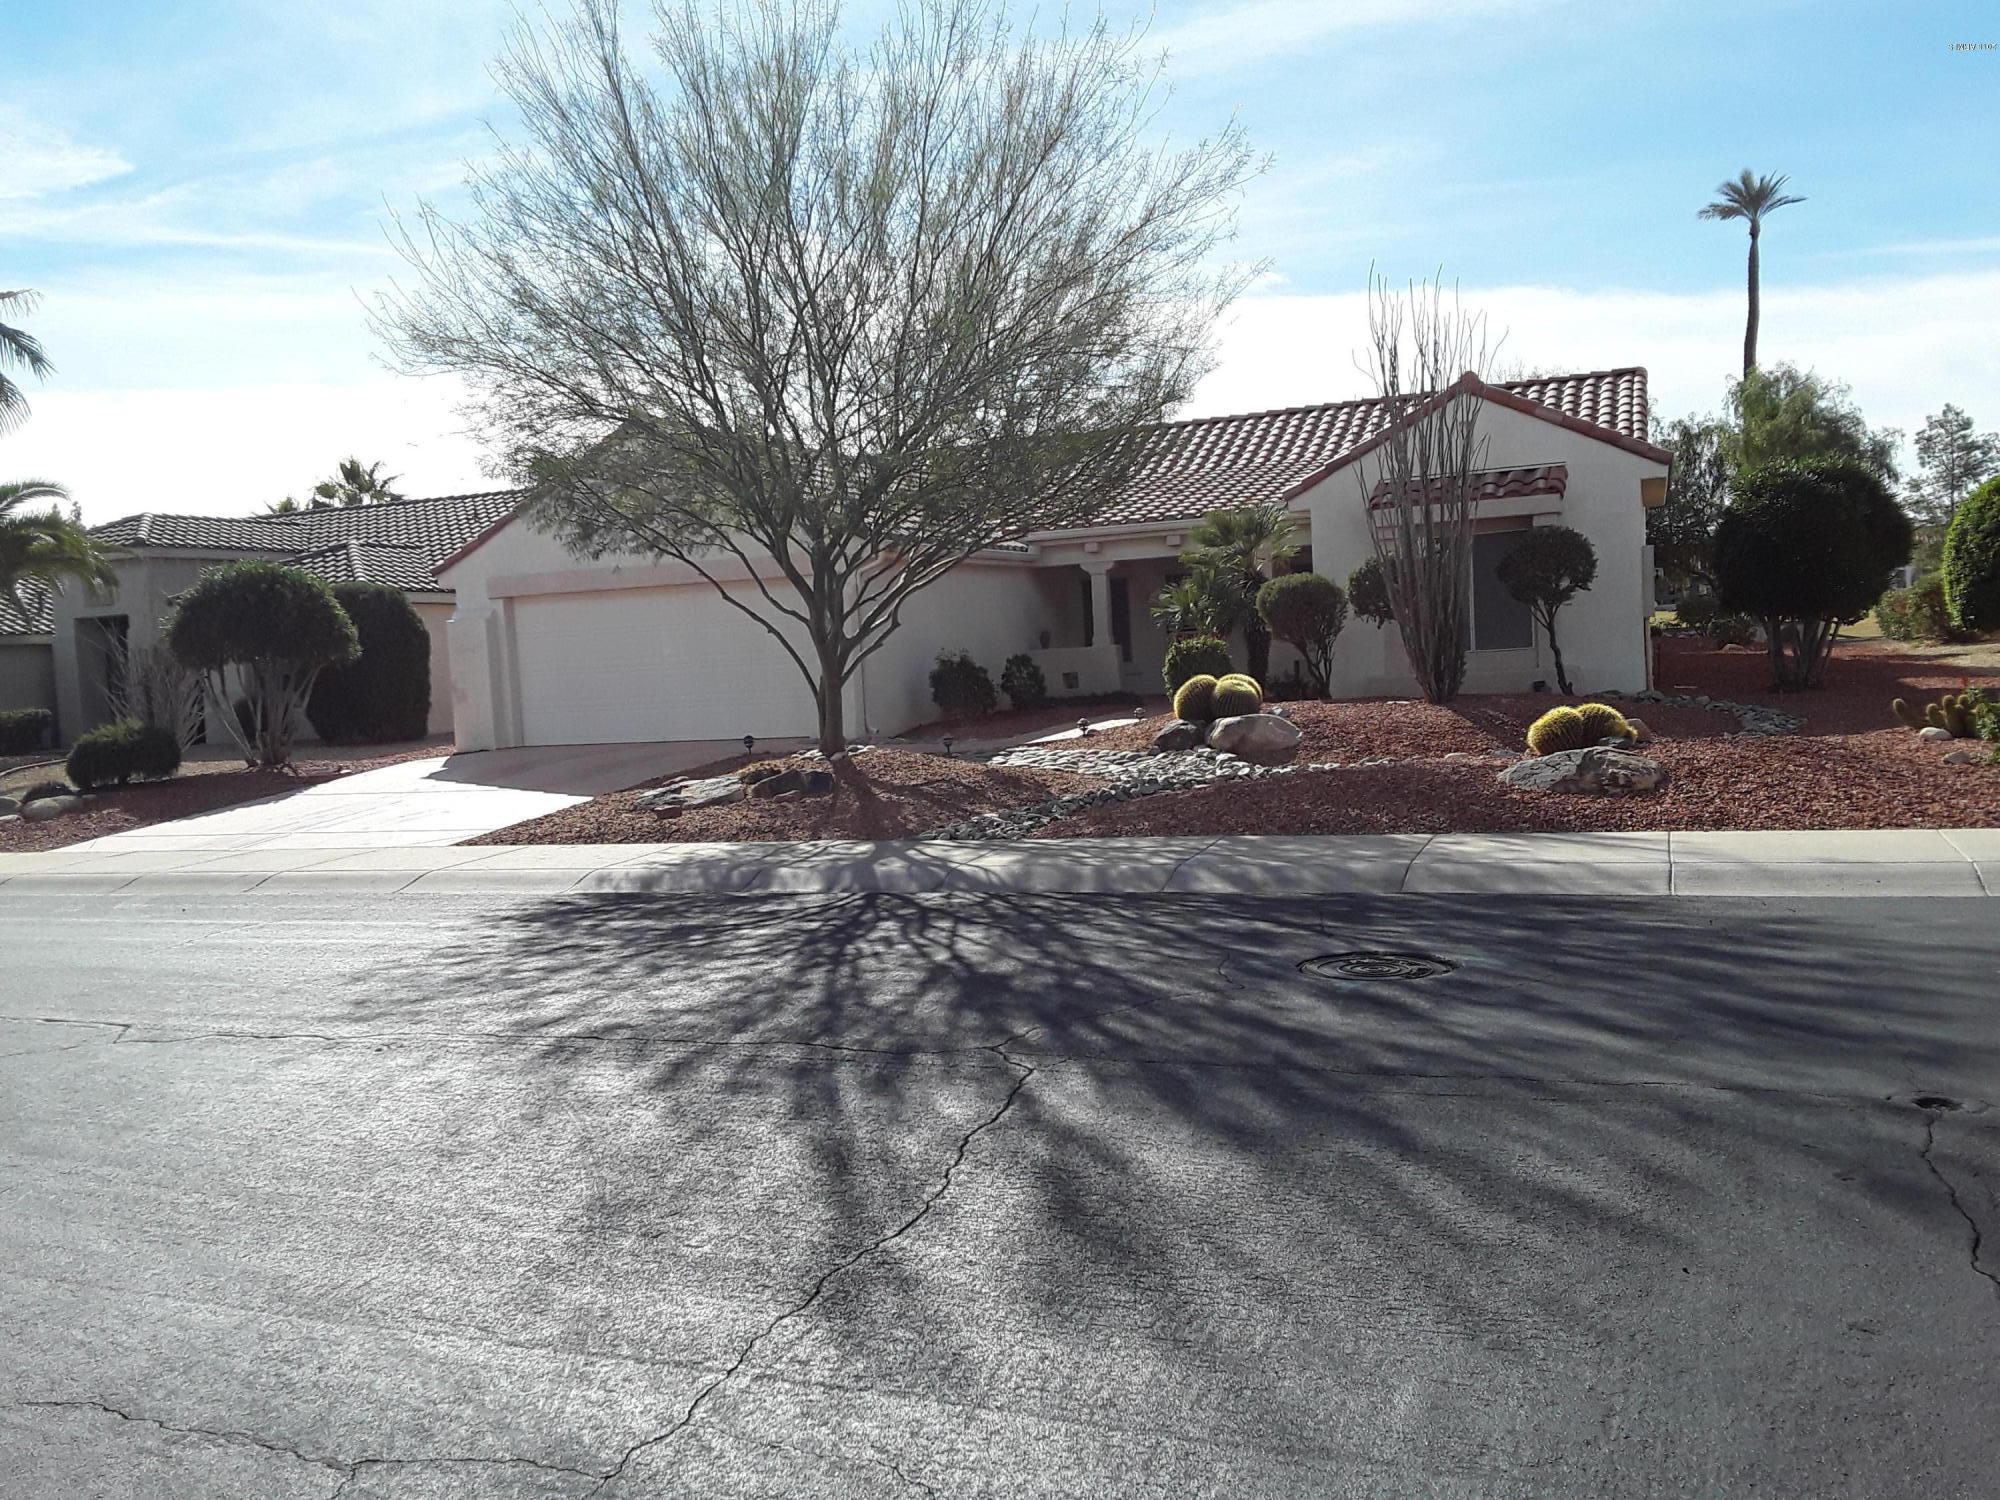 13925 W VIA TERCERO DRIVE, SUN CITY WEST, AZ 85375